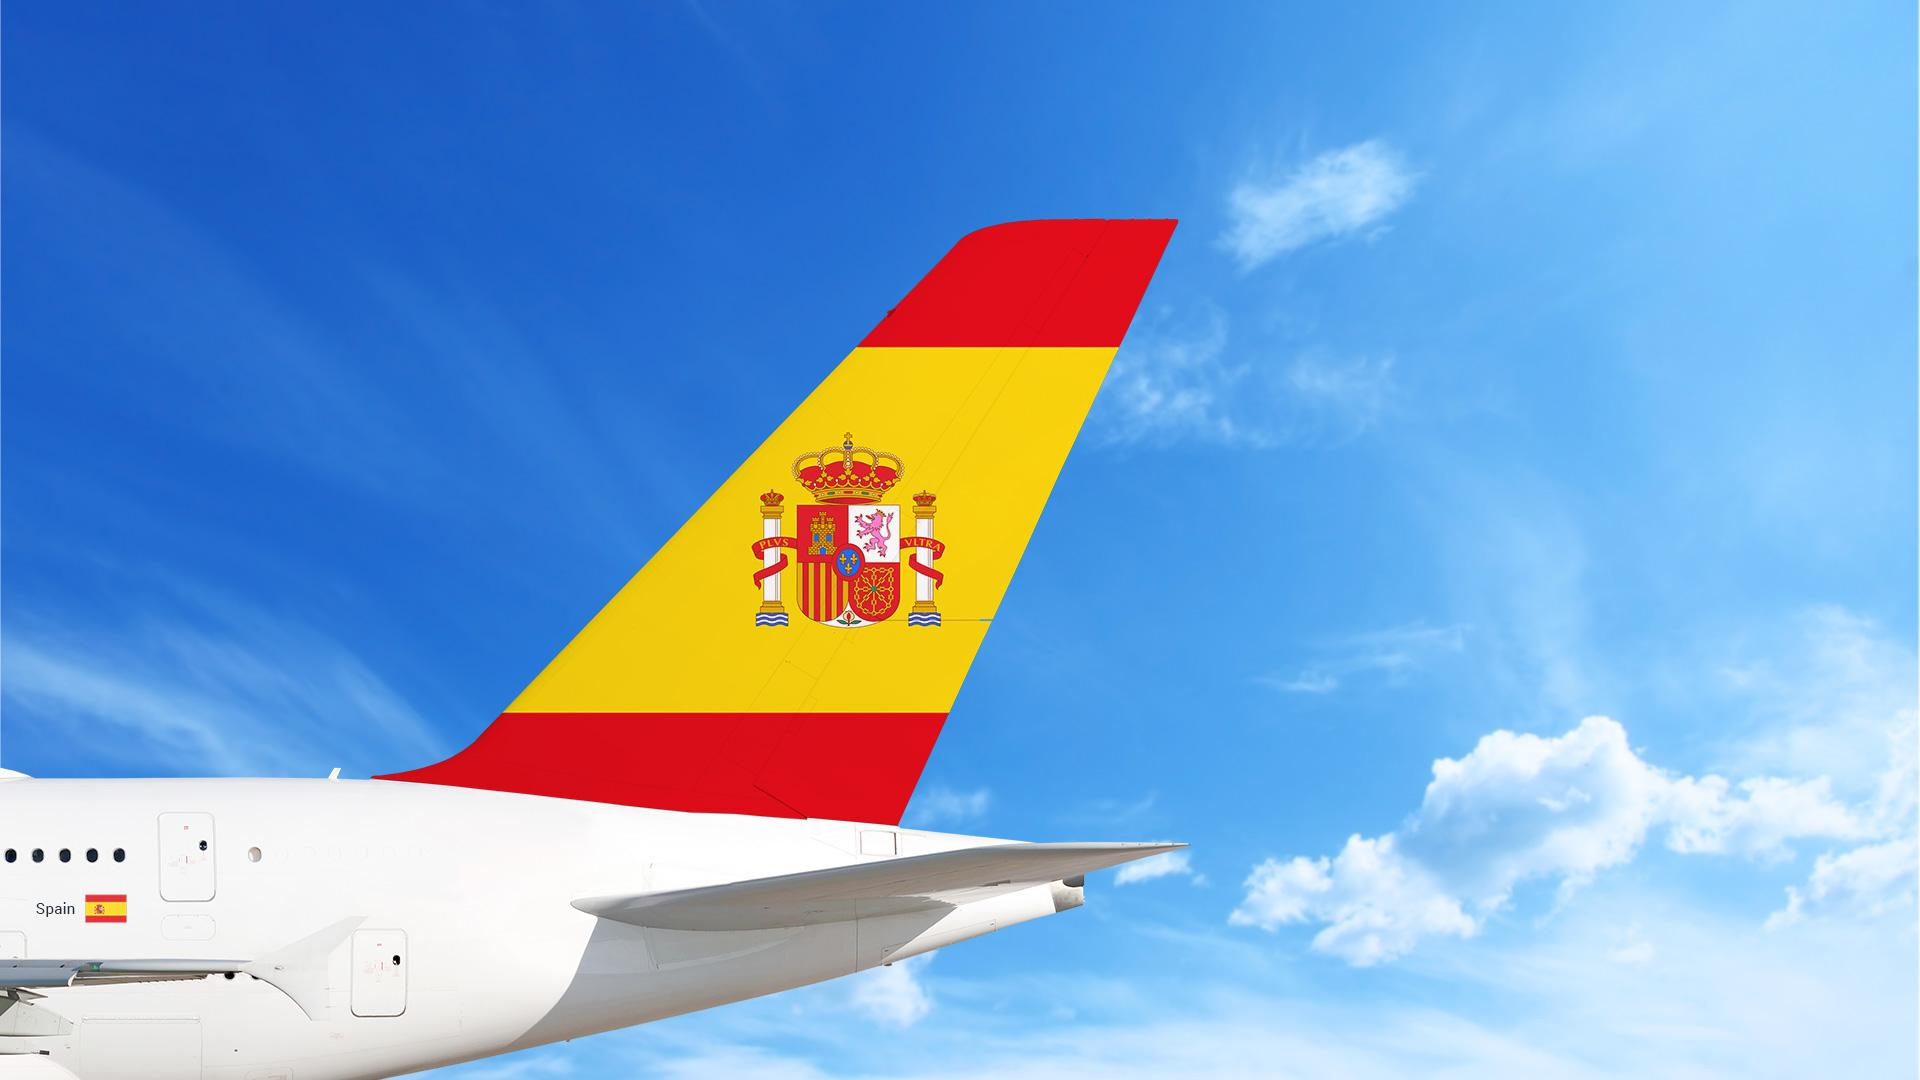 Airplane with the Spanish flag on the tail